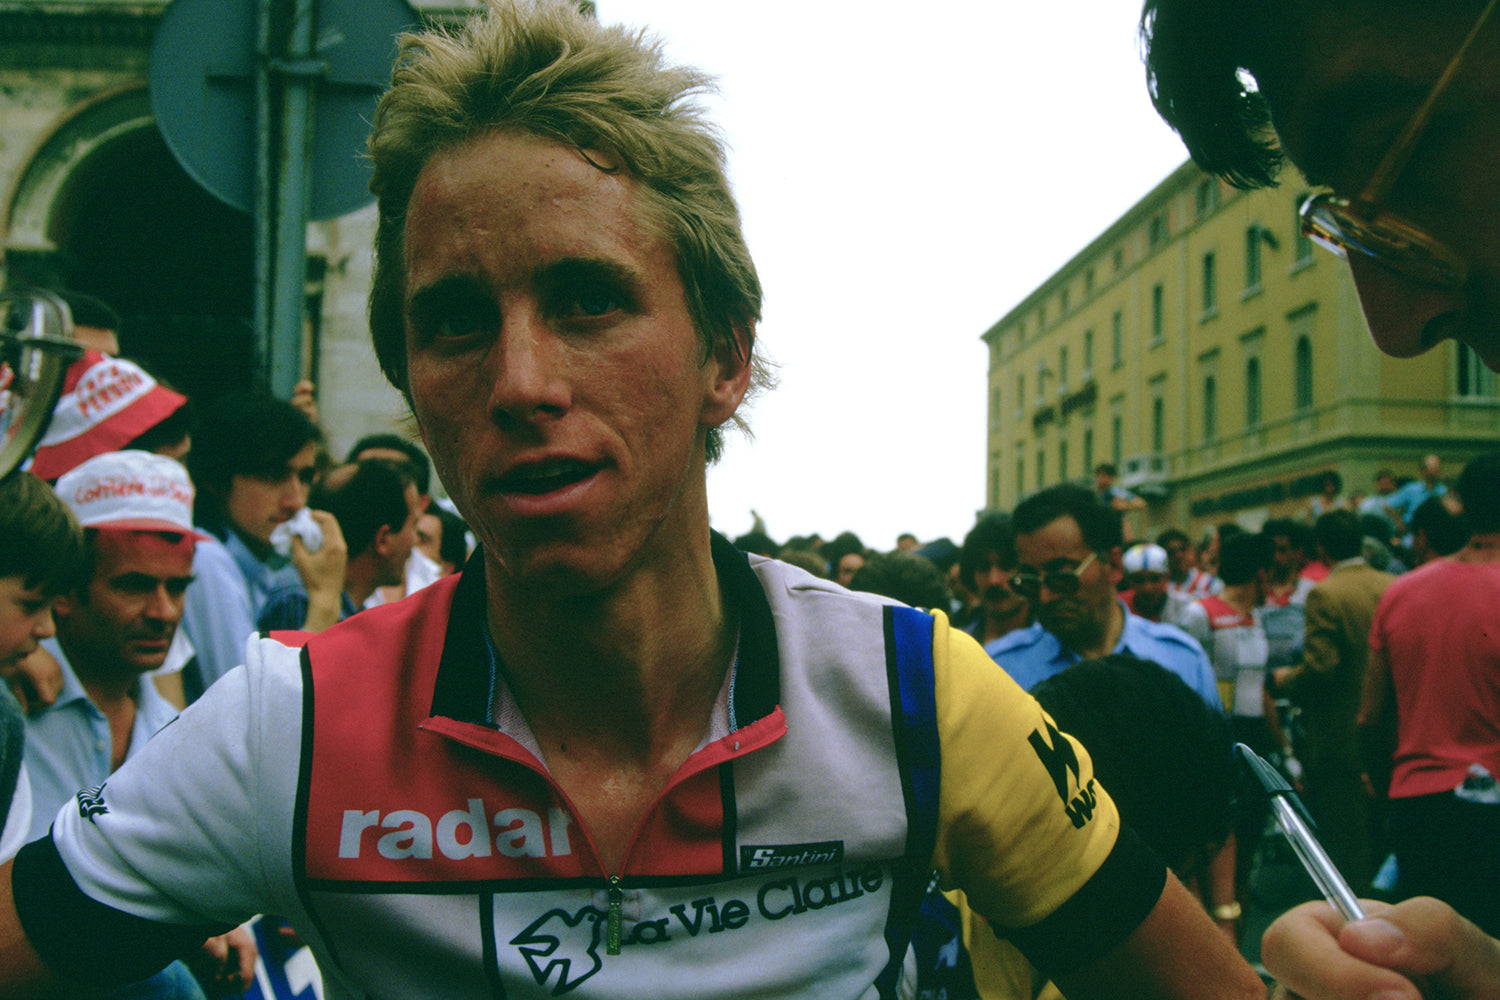 Greg Lemond joined the La Vie Claire team in 1985.